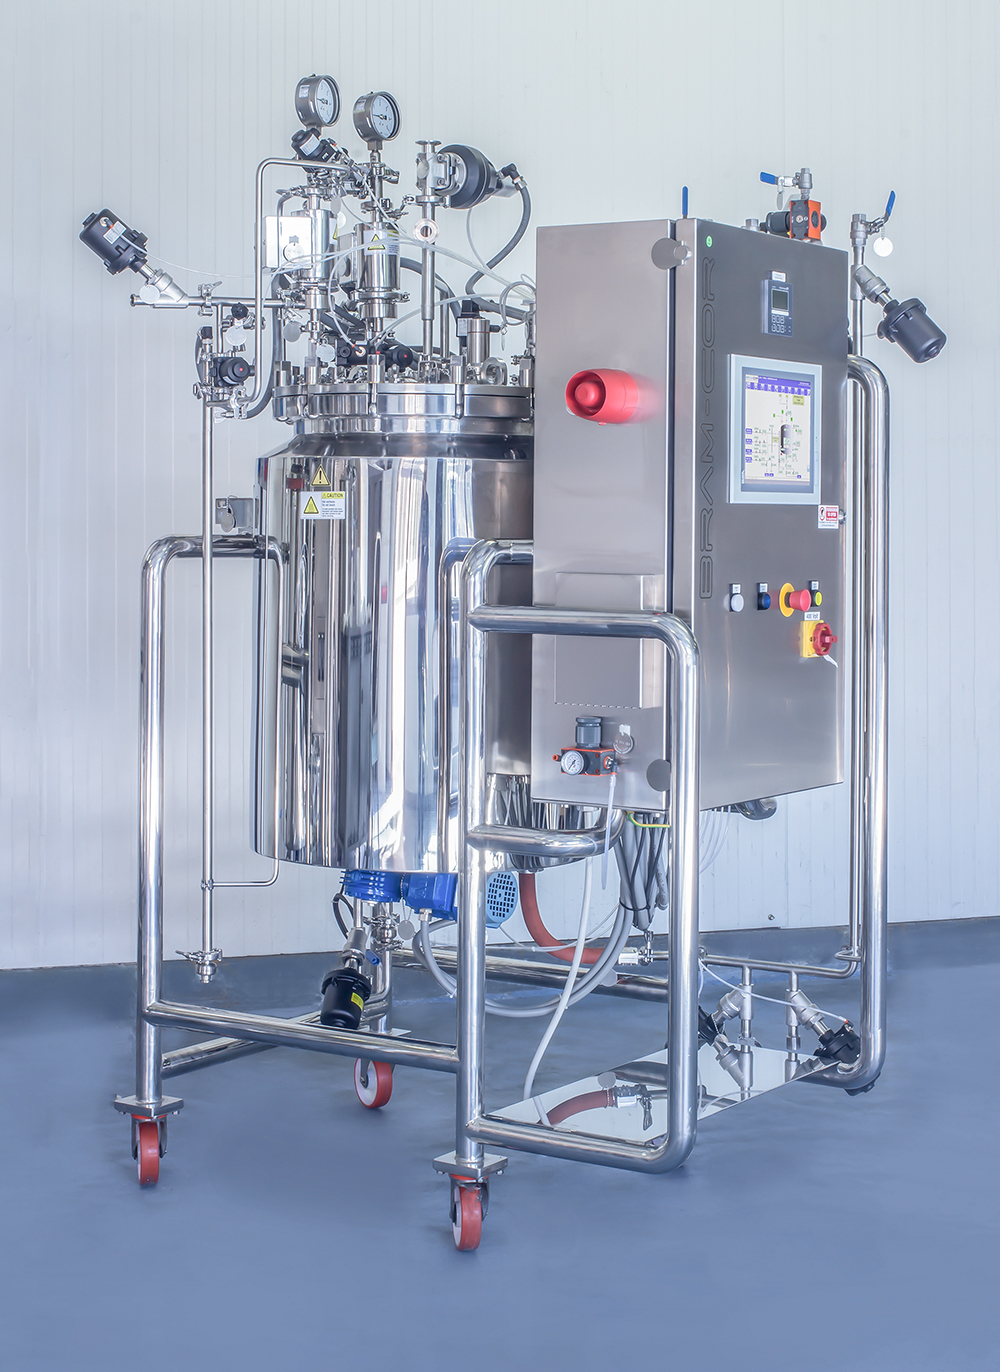 Bram-Cor Processing Systems - DISS WFTE 100 - Pharmaceutical Bioreactor